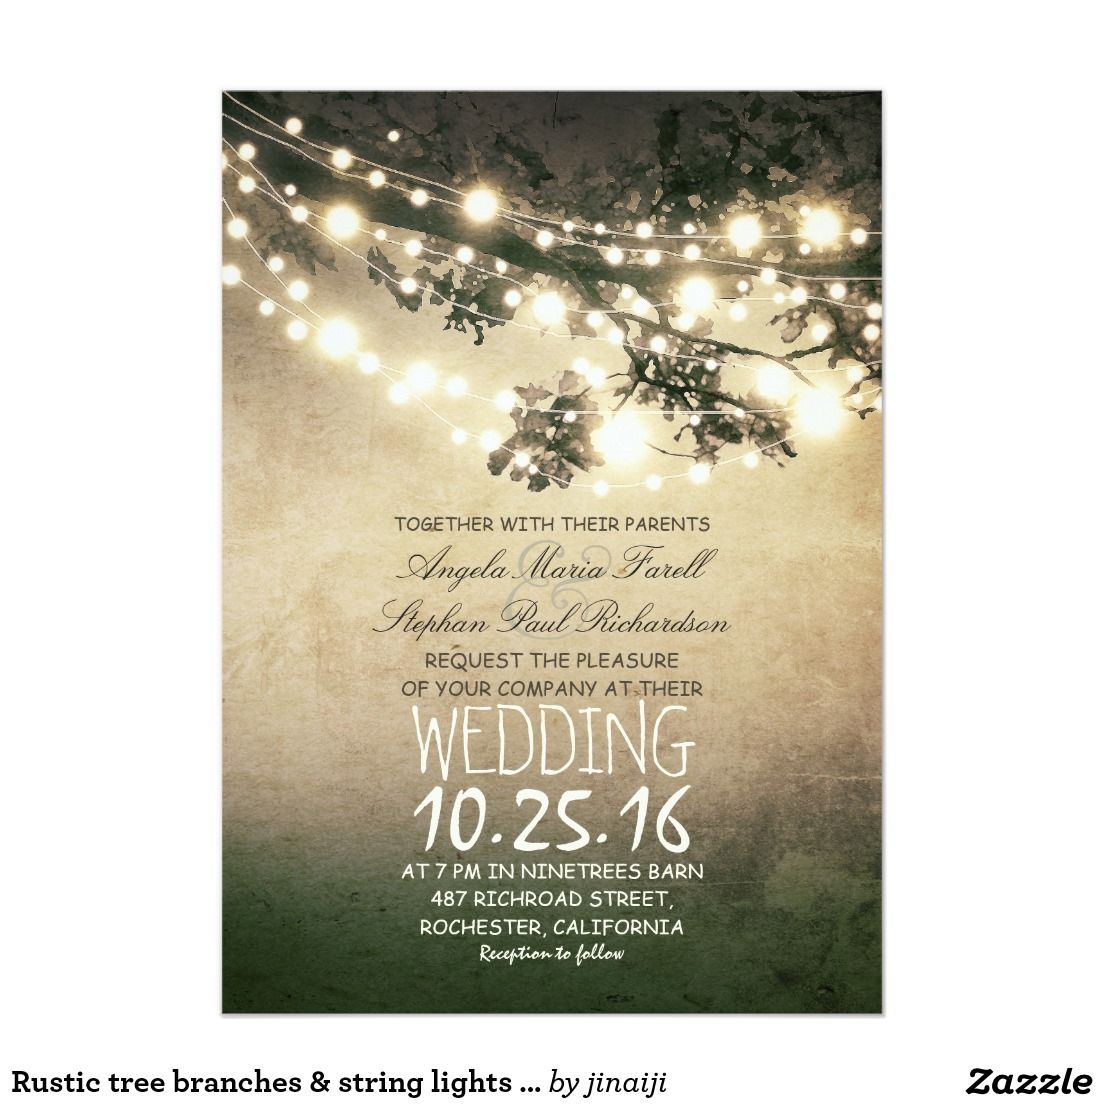 rustic tree branches and lights elegant wedding card trees rustic tree branches string lights wedding 5x7 paper invitation card